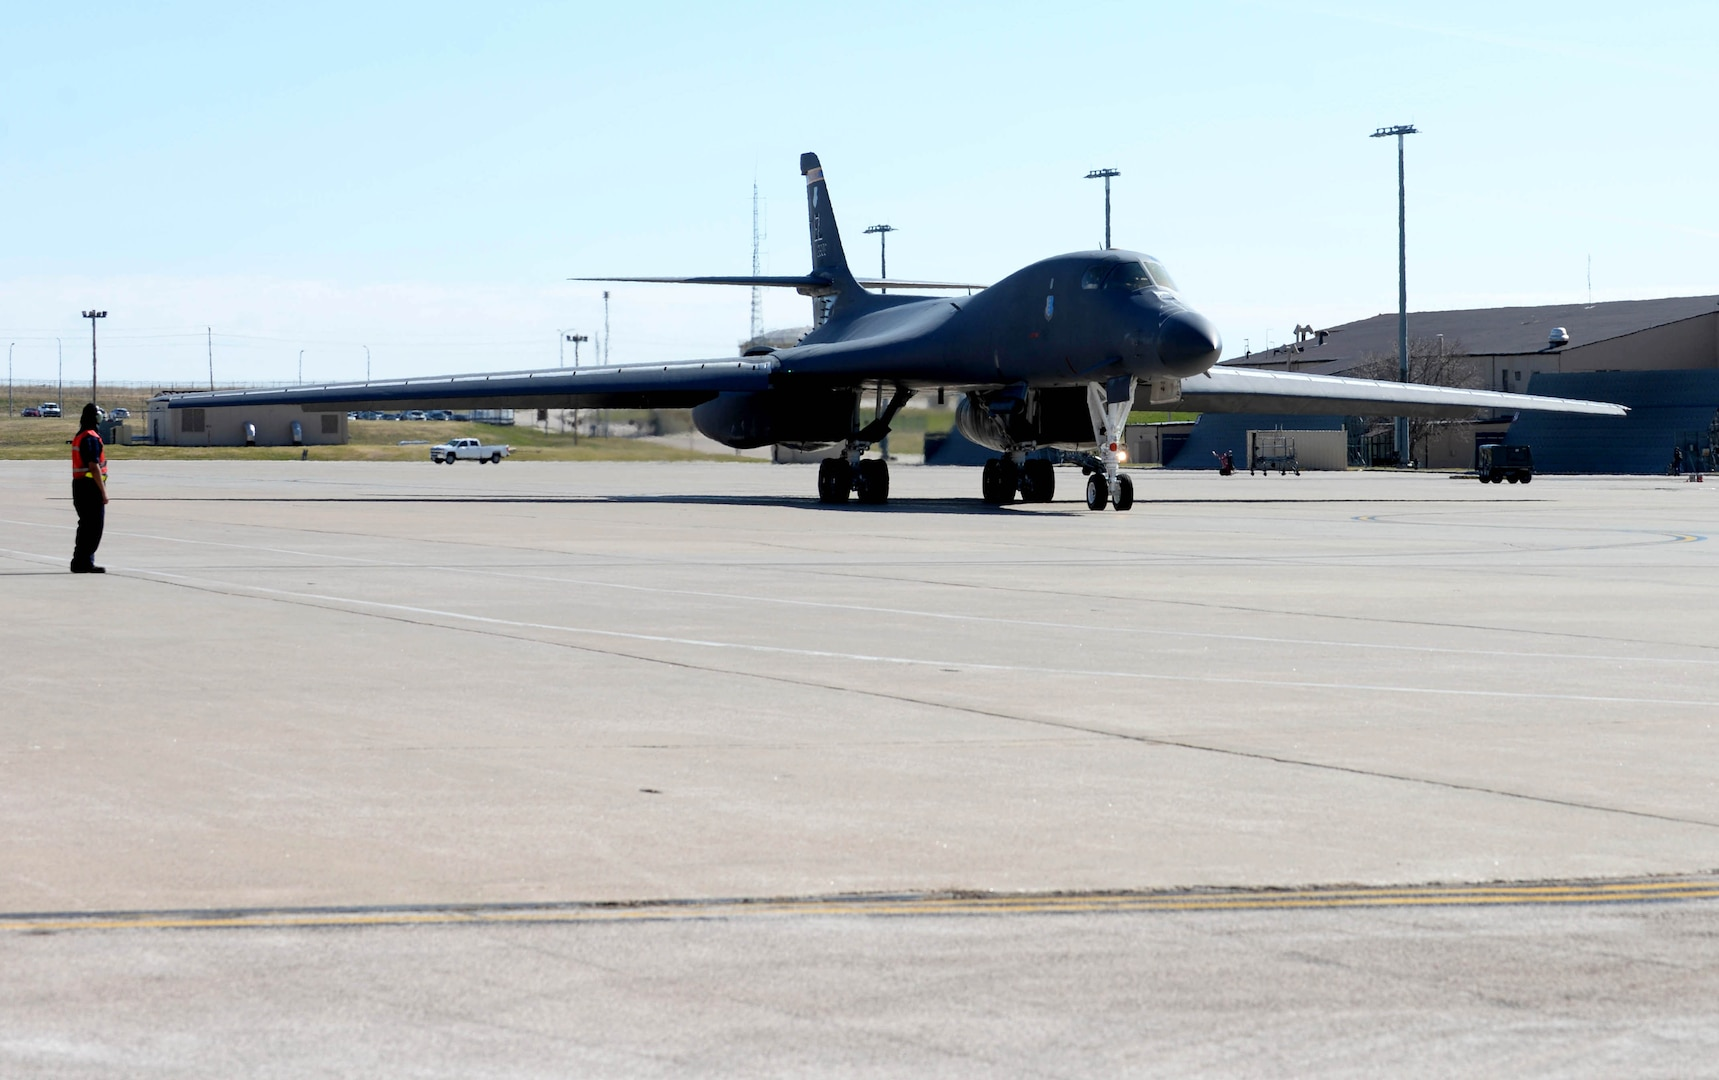 A U.S. Air Force B-1B Lancer is marshaled to the taxiway at Ellsworth Air Force Base, S.D., April 21, 2020. The B-1B's speed and superior handling characteristics allow it to seamlessly integrate in mixed force packages. (U.S. Air Force photo by Airman Quentin K. Marx)